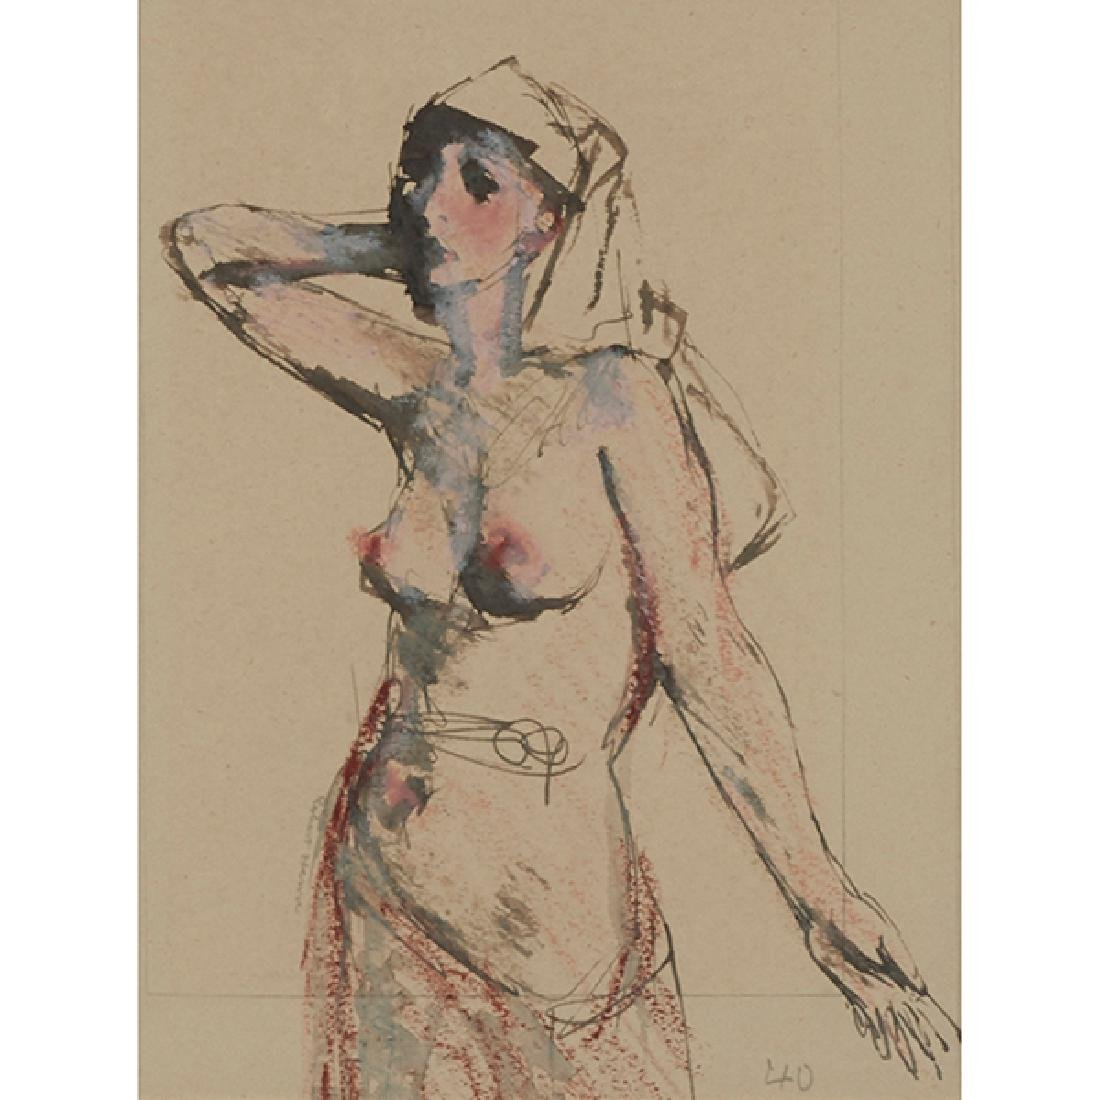 Robert Henri, (American, 1865-1929), Nude with Covered